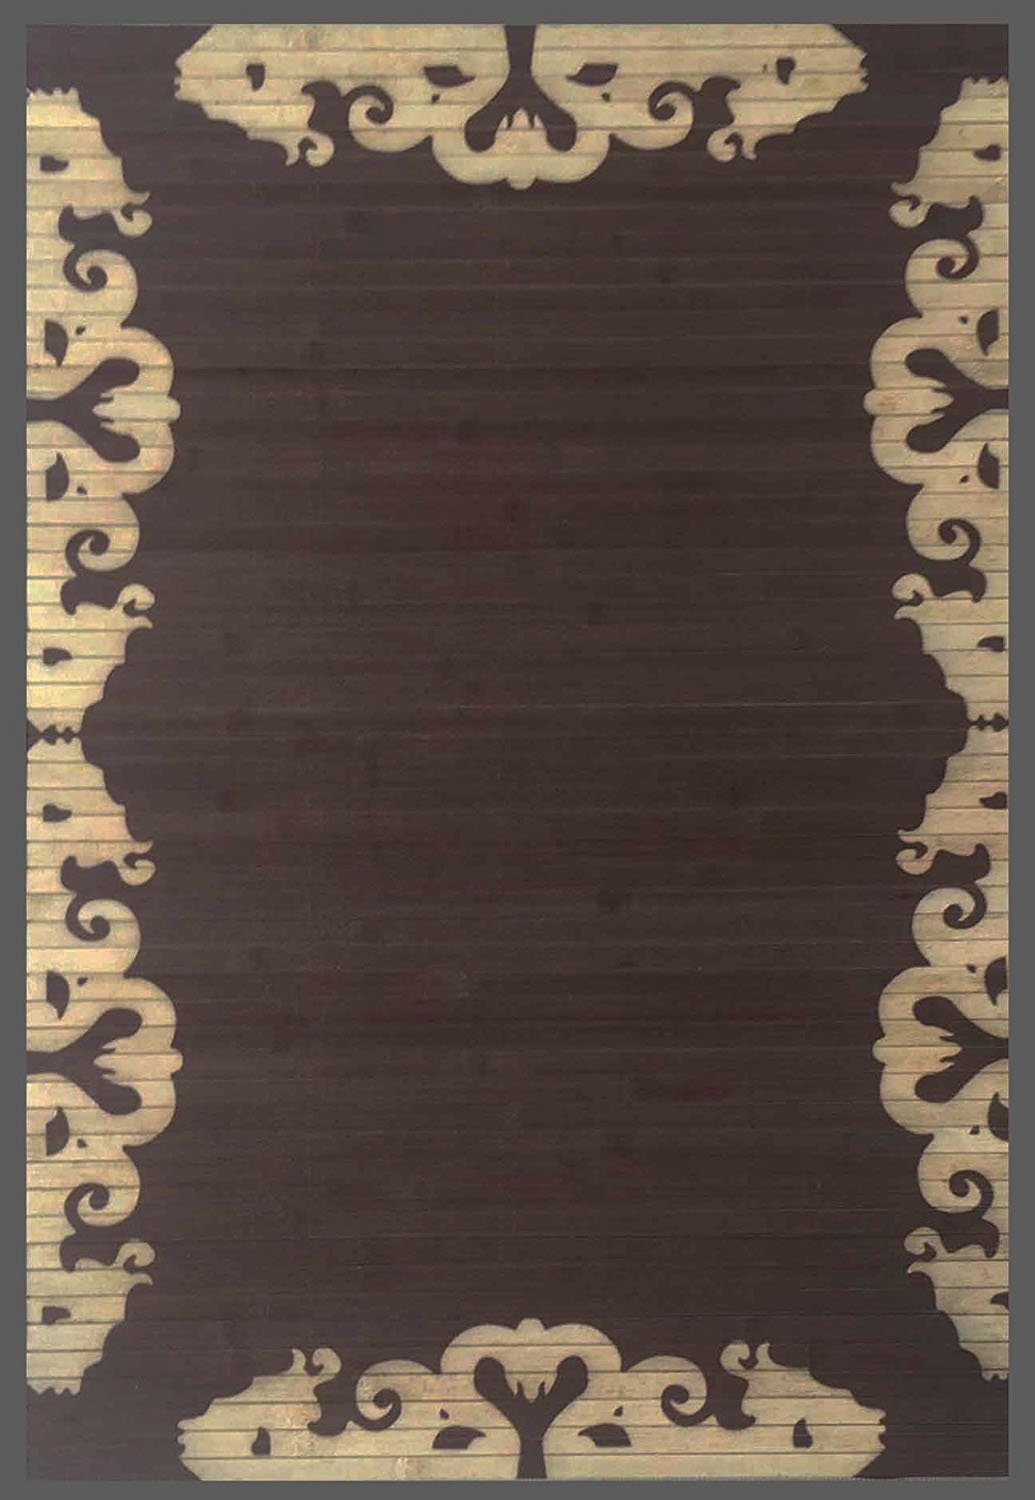 Natural Bamboo Area Rug W//Lace Printing Design 24 W x 36 L GinsonWare